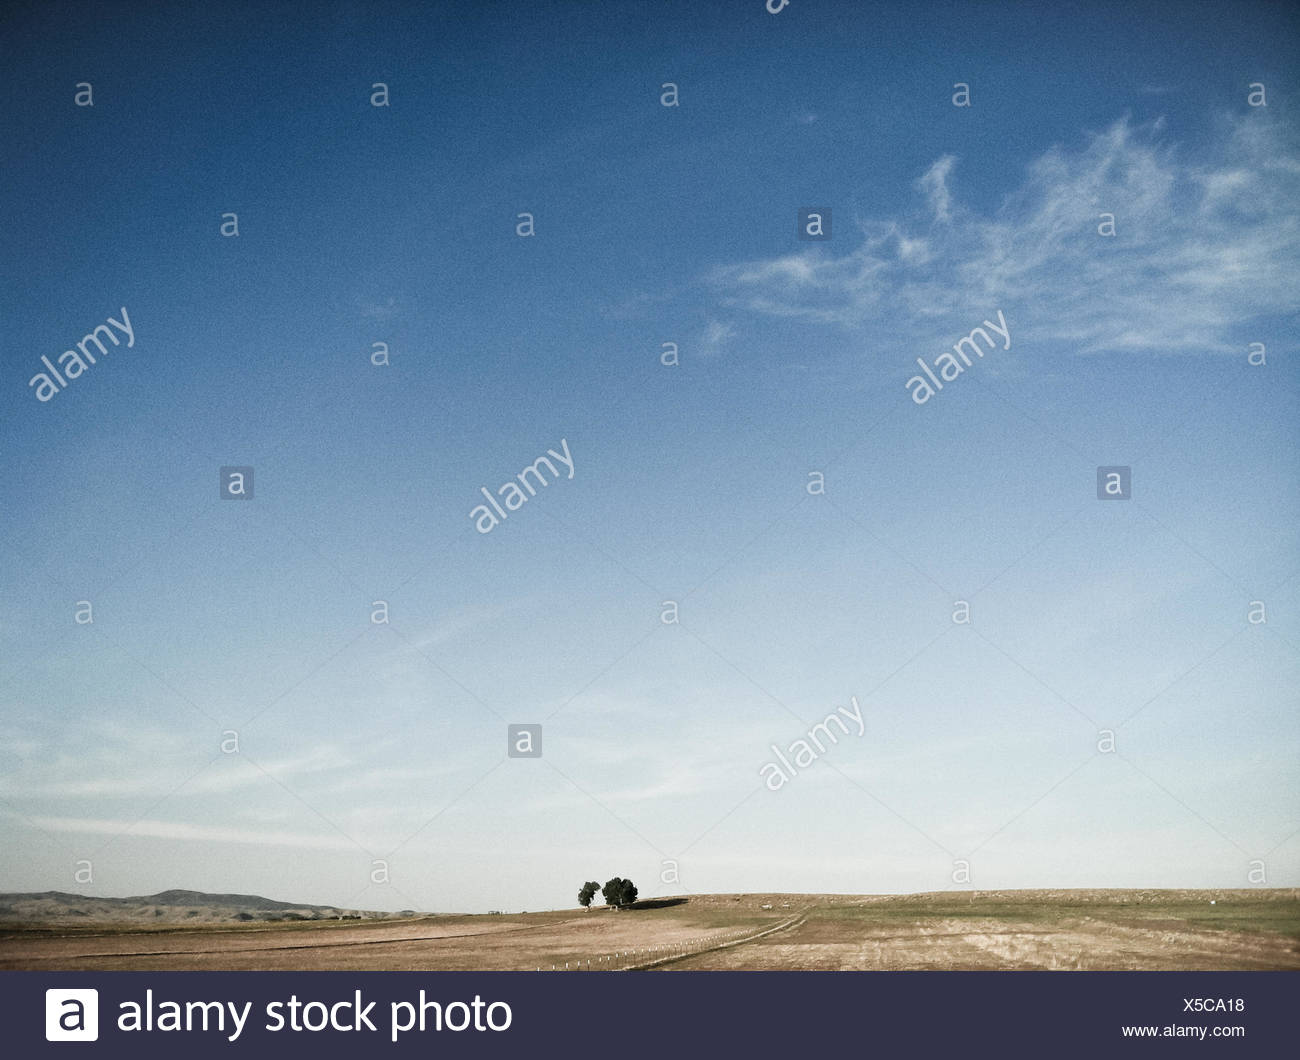 Isolated landscape - Stock Image